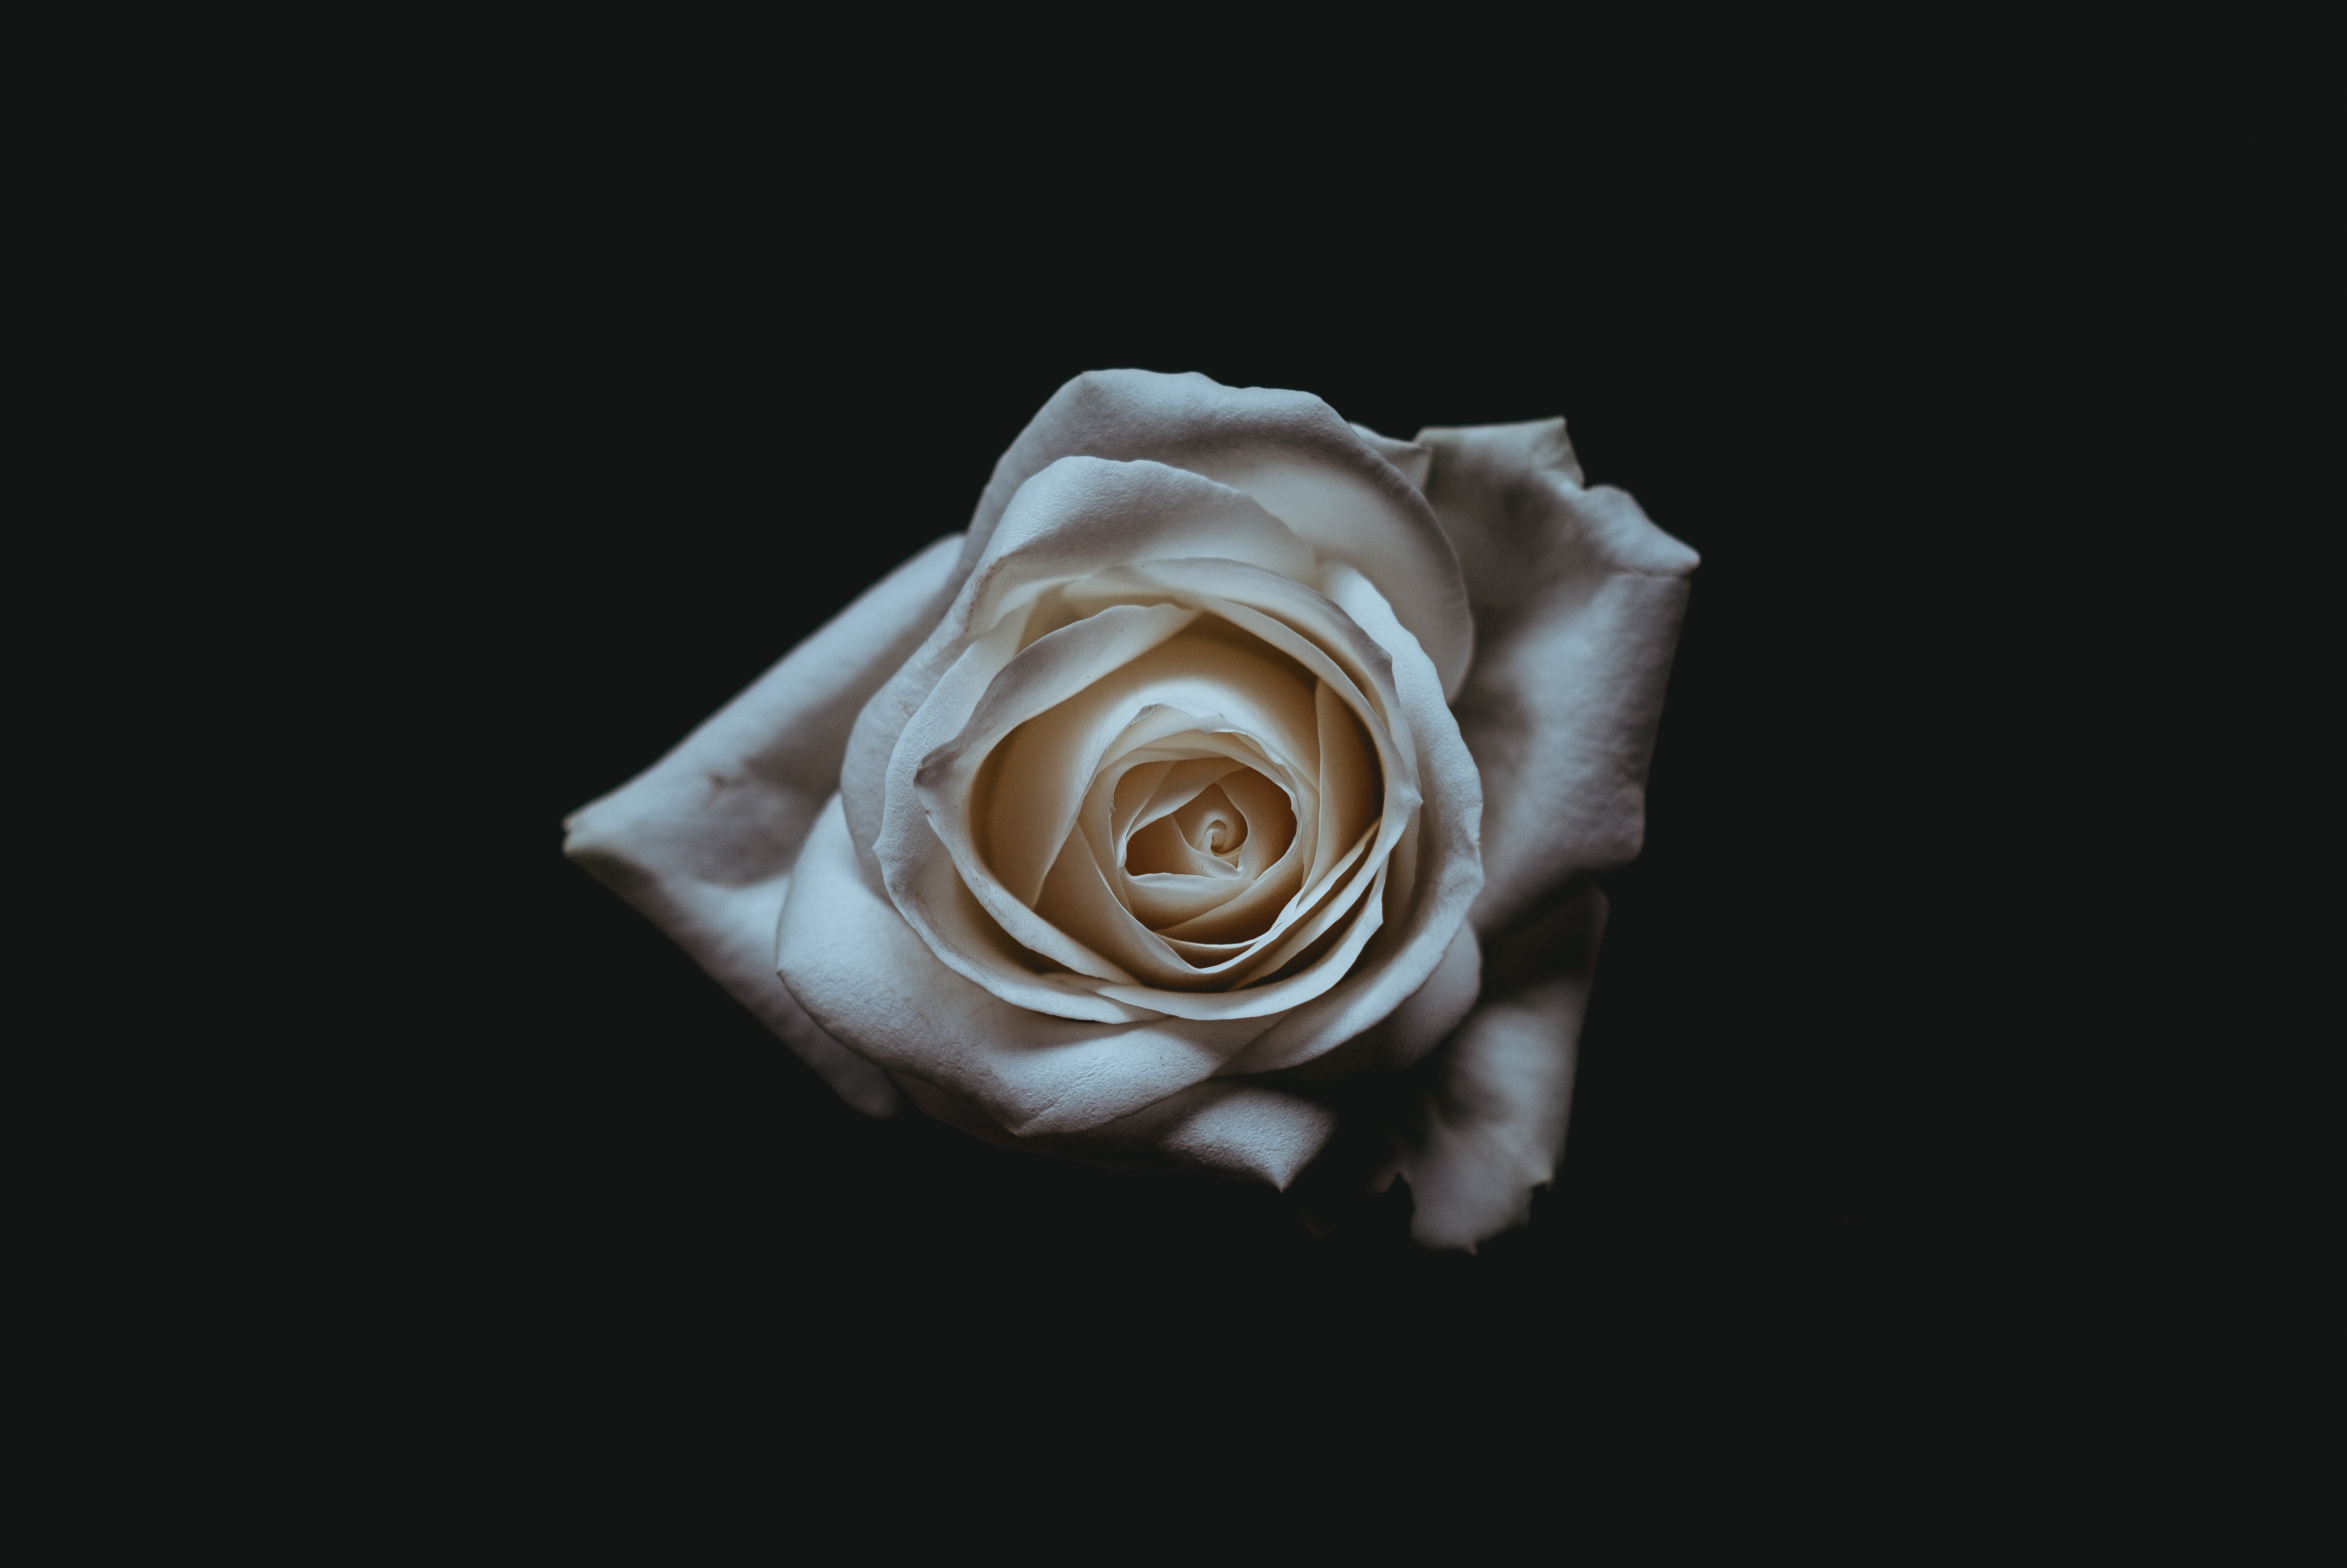 A pale white rose against a black background